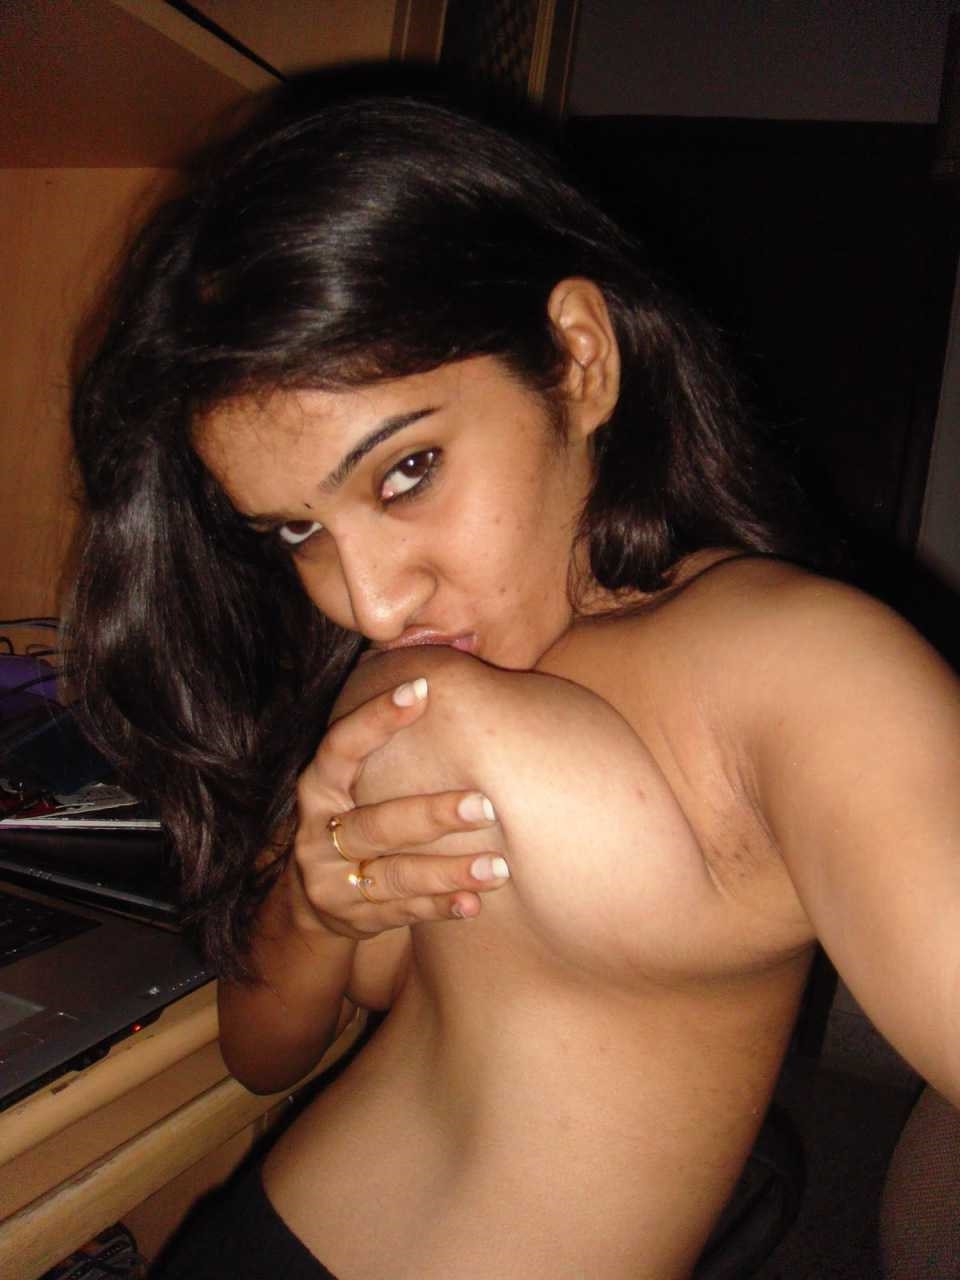 hot kerala girl fucked nude on bed